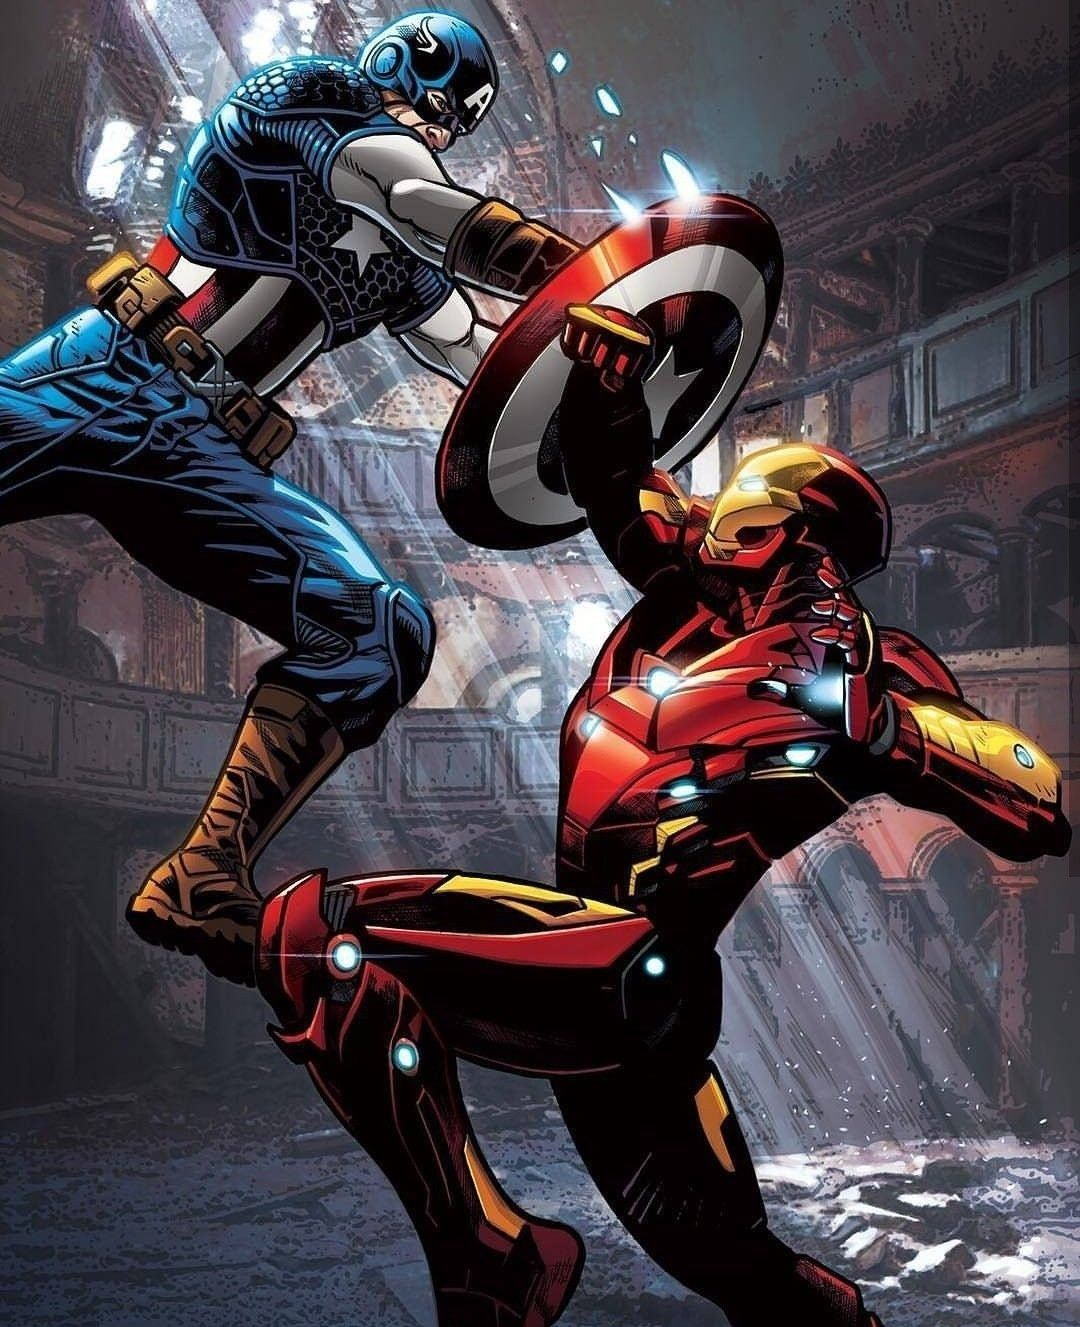 Iron Man Vs Captain America Capitao America Personagens Dos Vingadores Herois Marvel